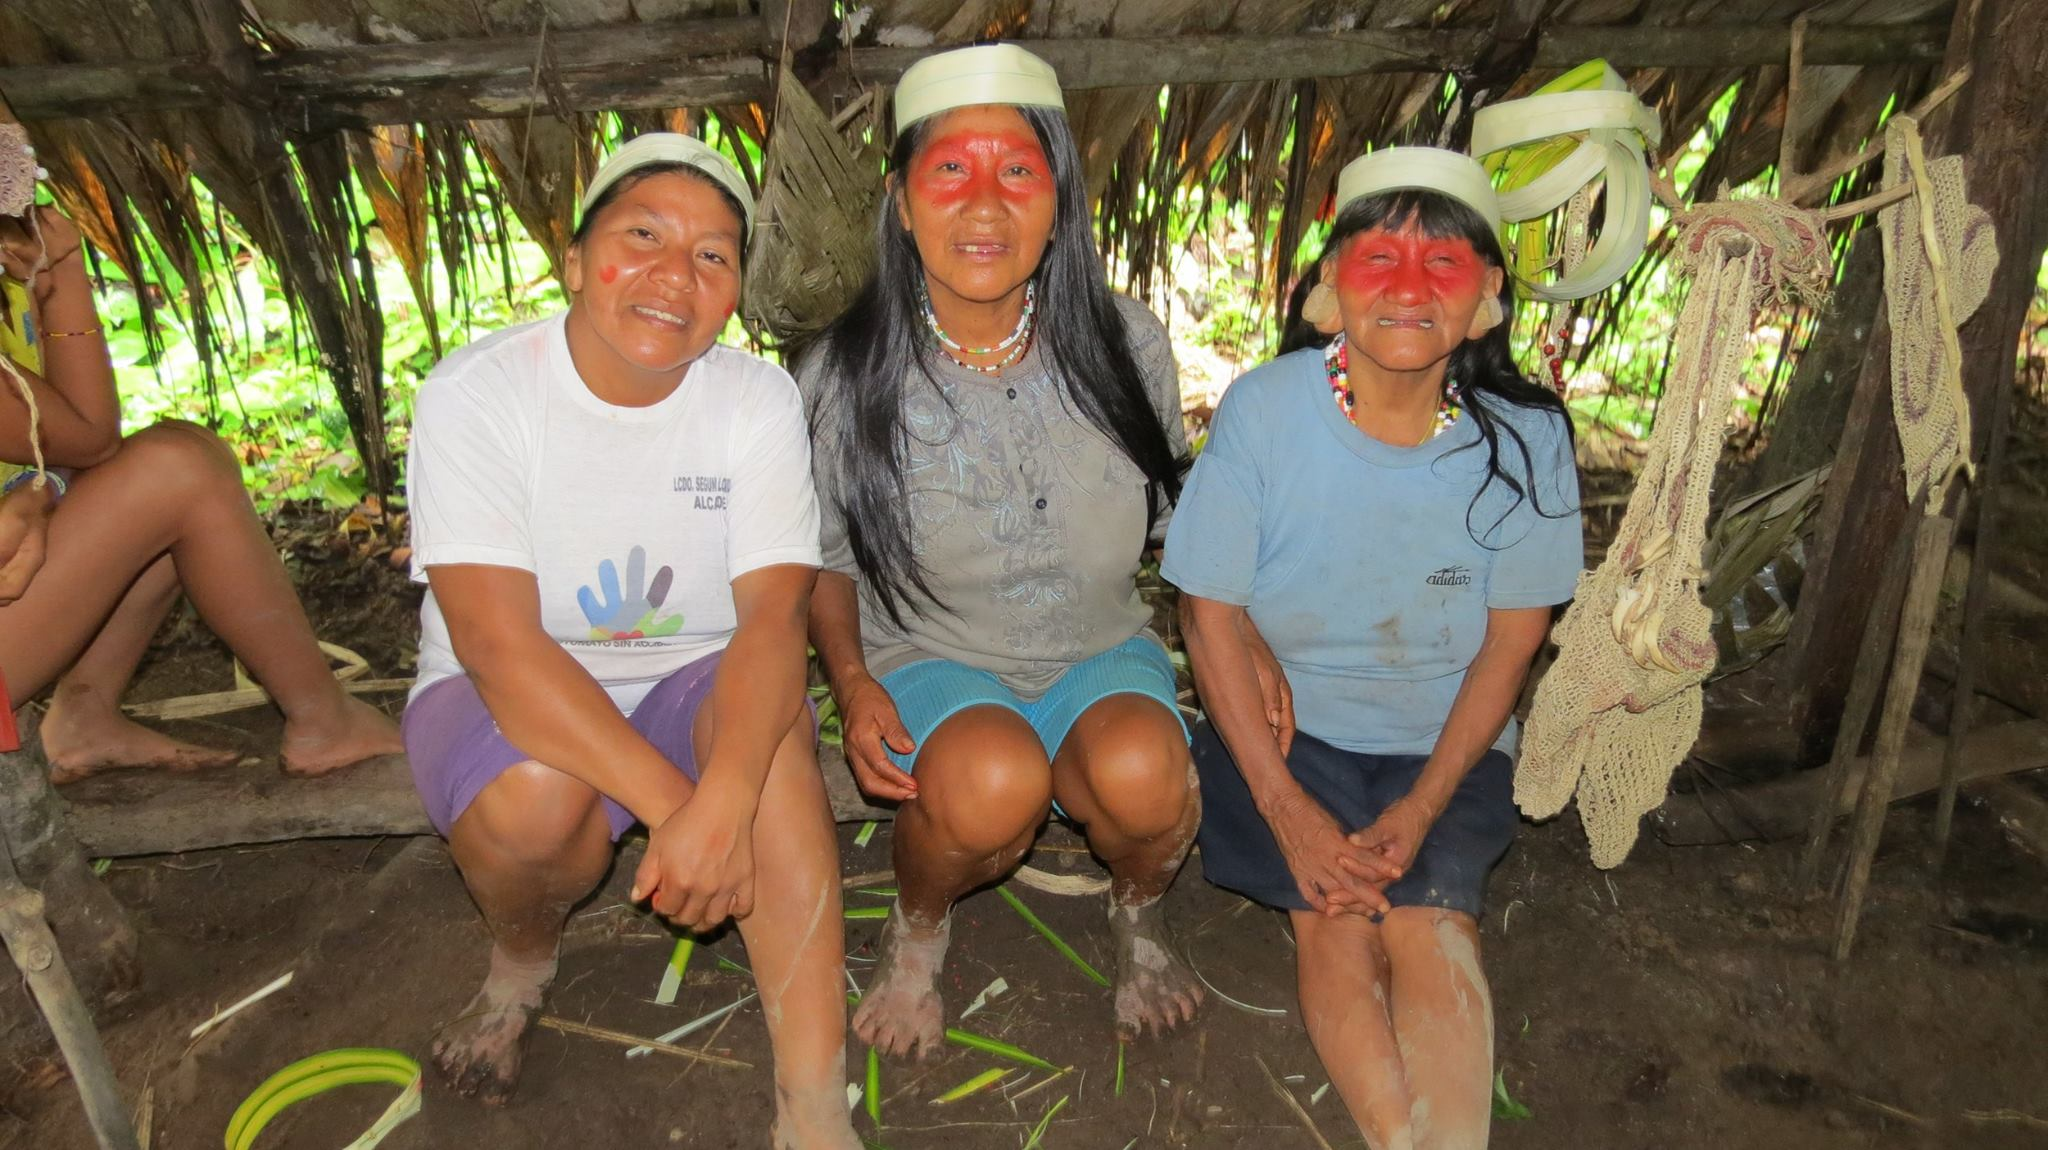 Village life for women in the Ecuadorian Amazon, where community is at the heart of Huaorani tribal living.